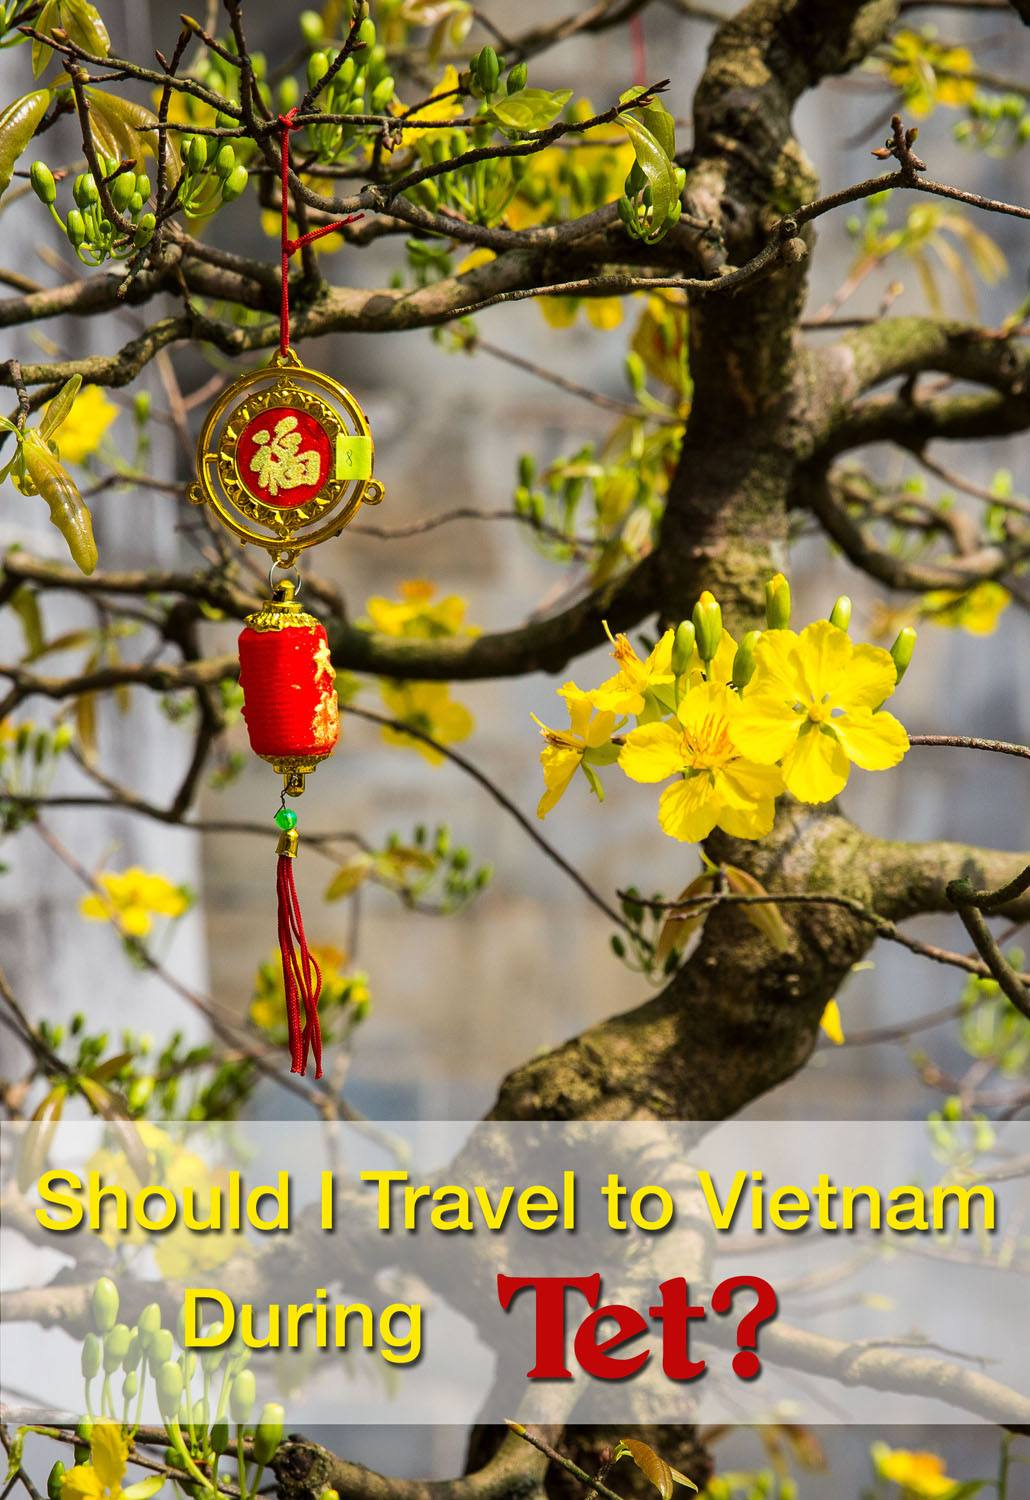 Should I Travel to Vietnam During Tet